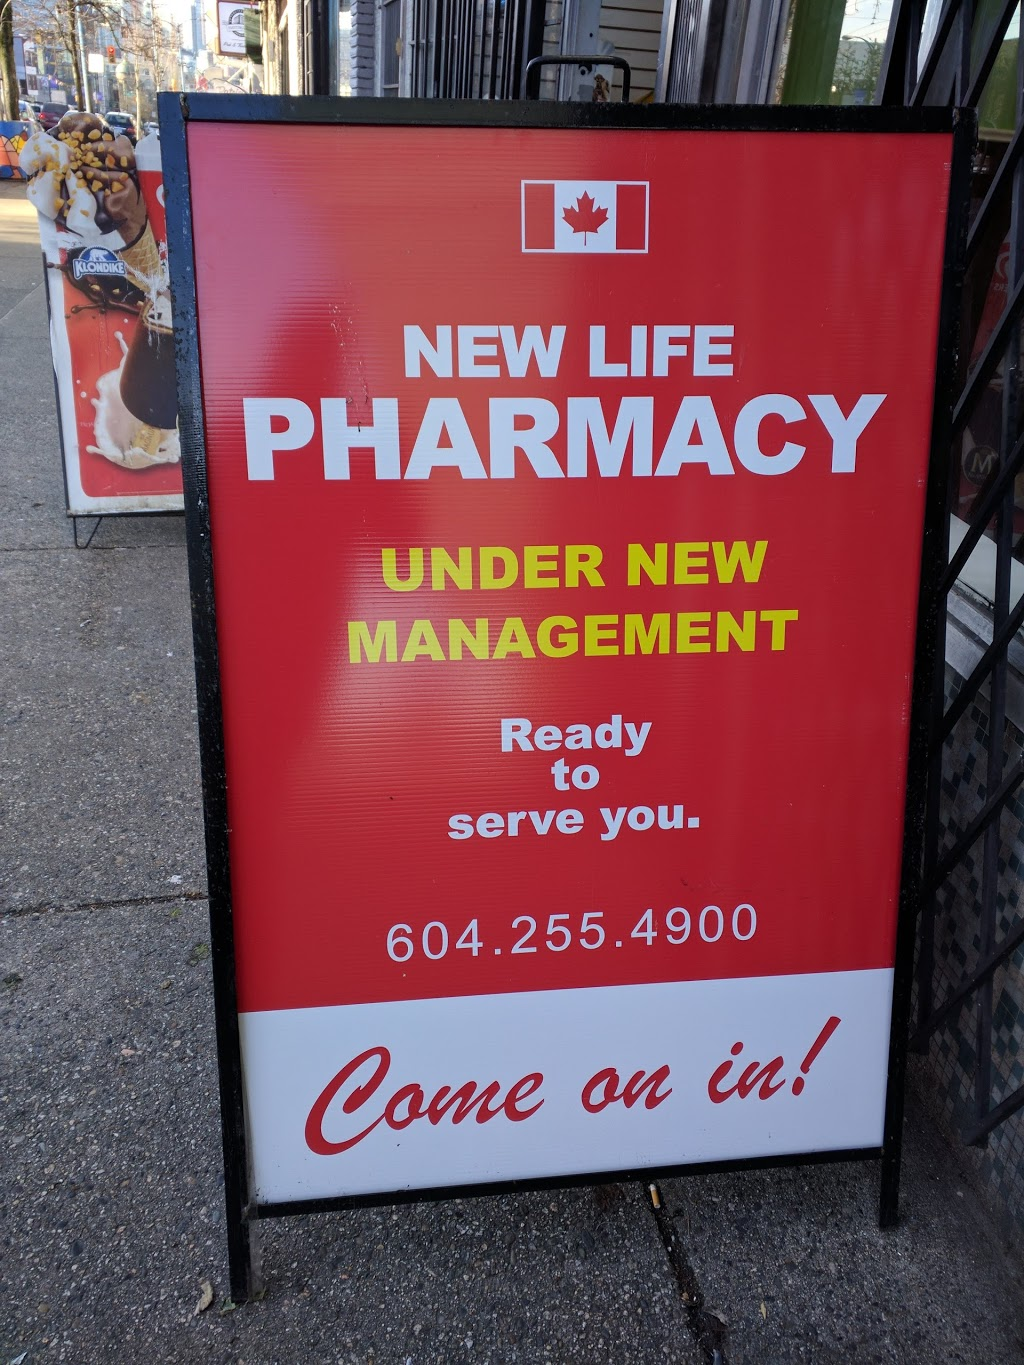 New Life Pharmacy | health | 463 E Hastings St, Vancouver, BC V6A 1P5, Canada | 6042554900 OR +1 604-255-4900